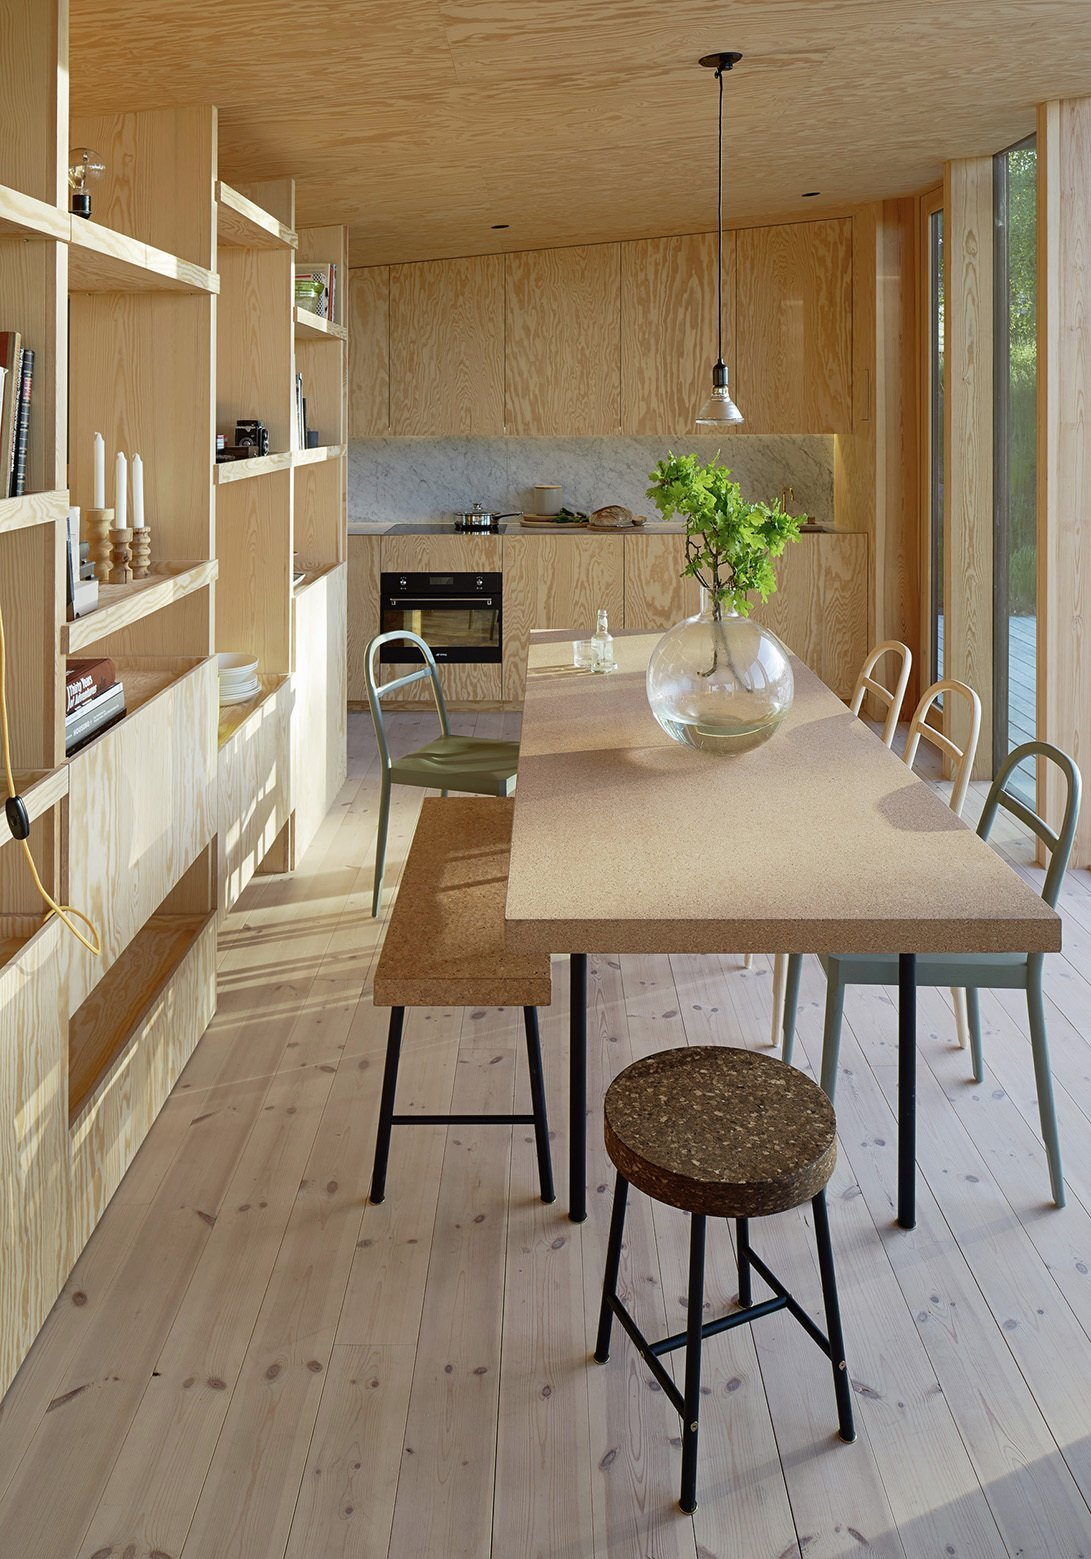 Aspvik House - Small House - Andreas Martin Löf Arkitekter - Sweden - Living and Dining Area - Humble Homes